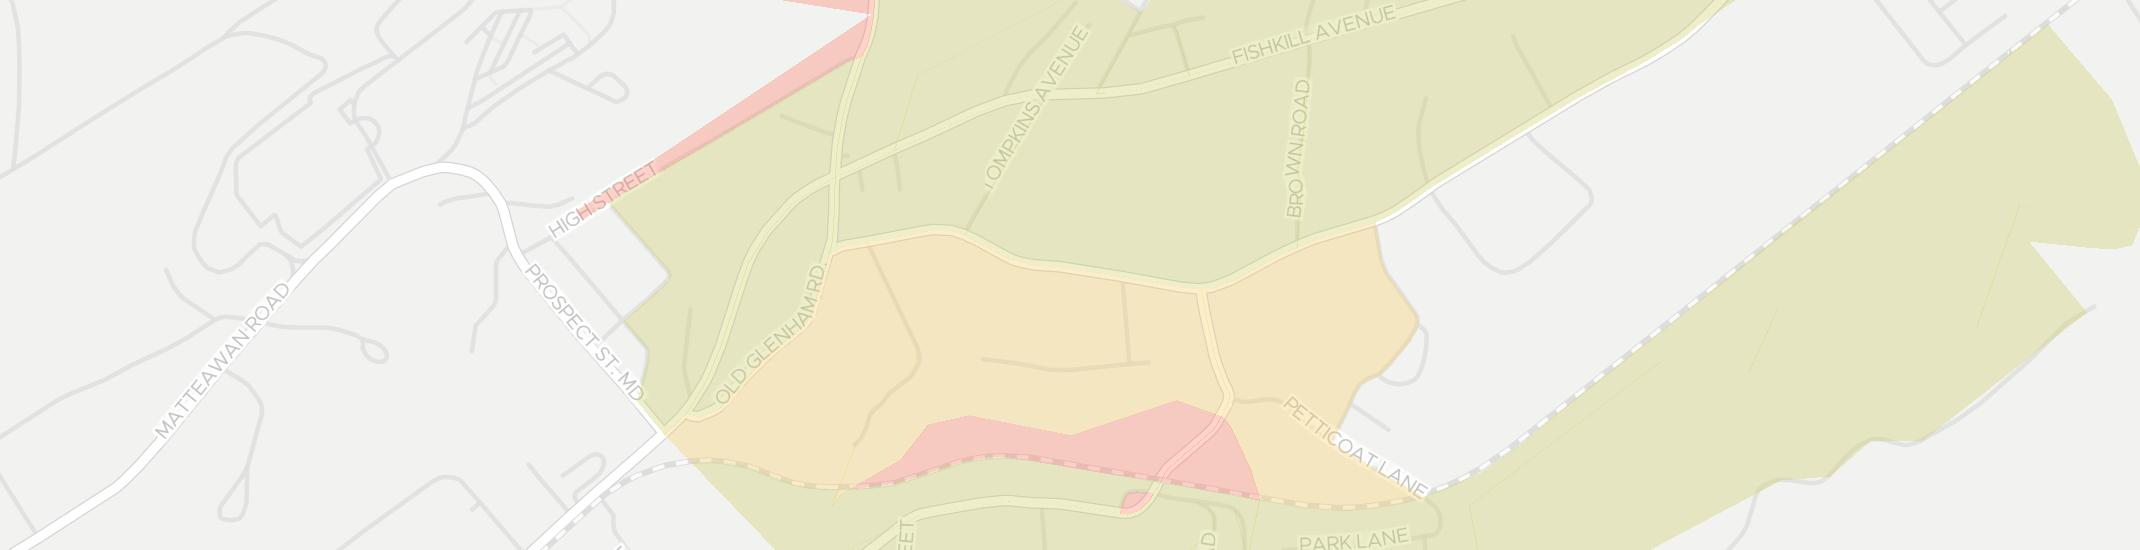 Glenham Internet Competition Map. Click for interactive map.